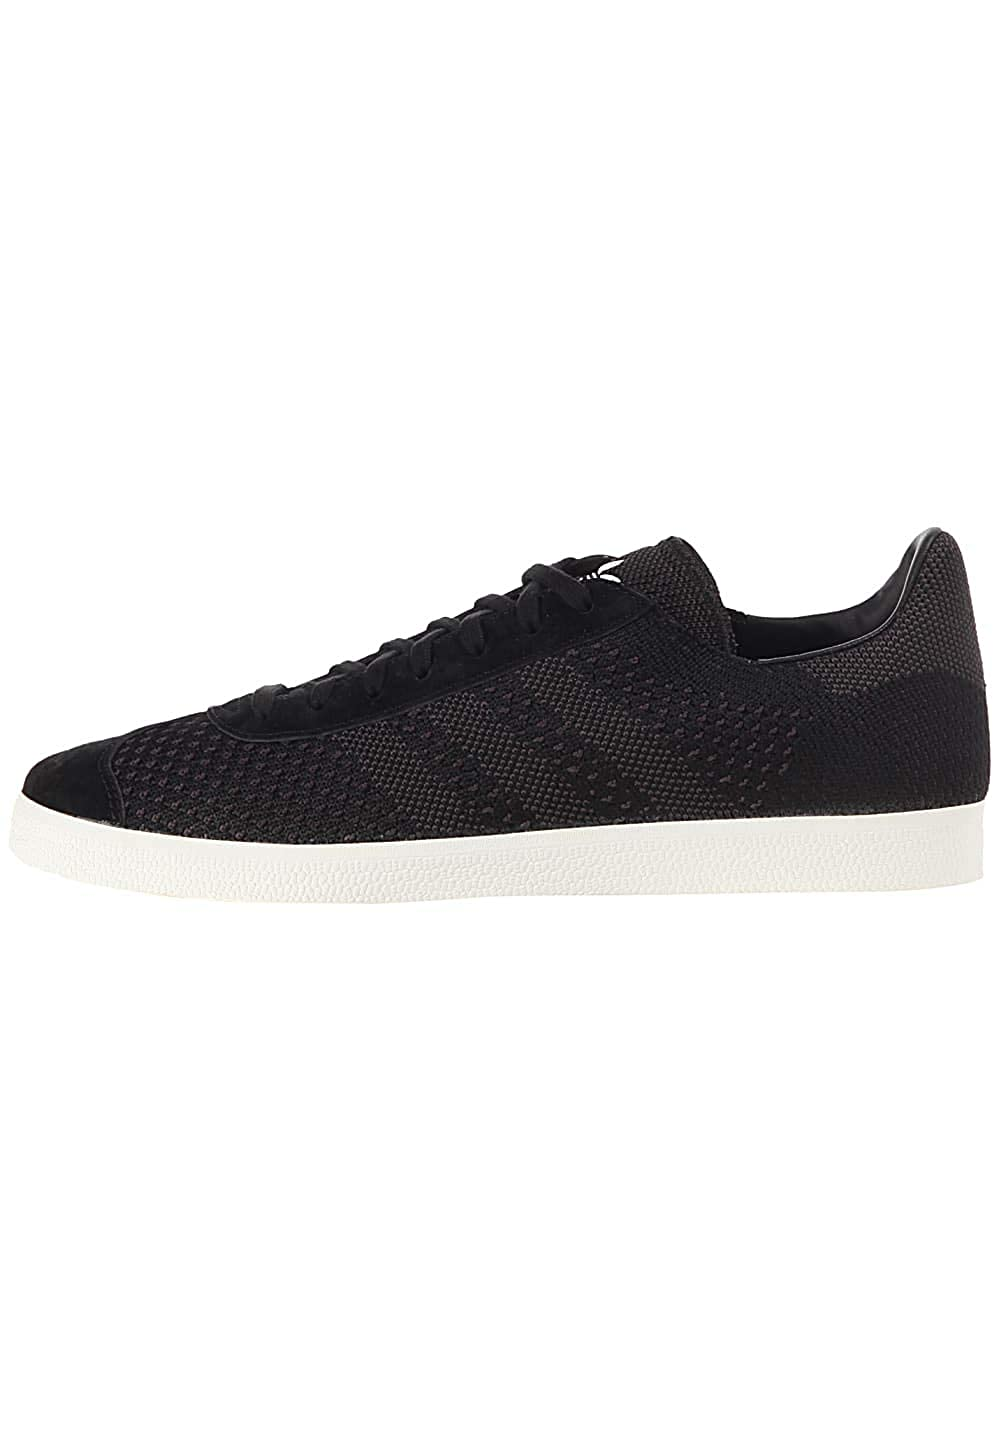 Black (Negbas Negbas Casbla) adidas Men's Gazelle Primeknit Low-Top Sneakers